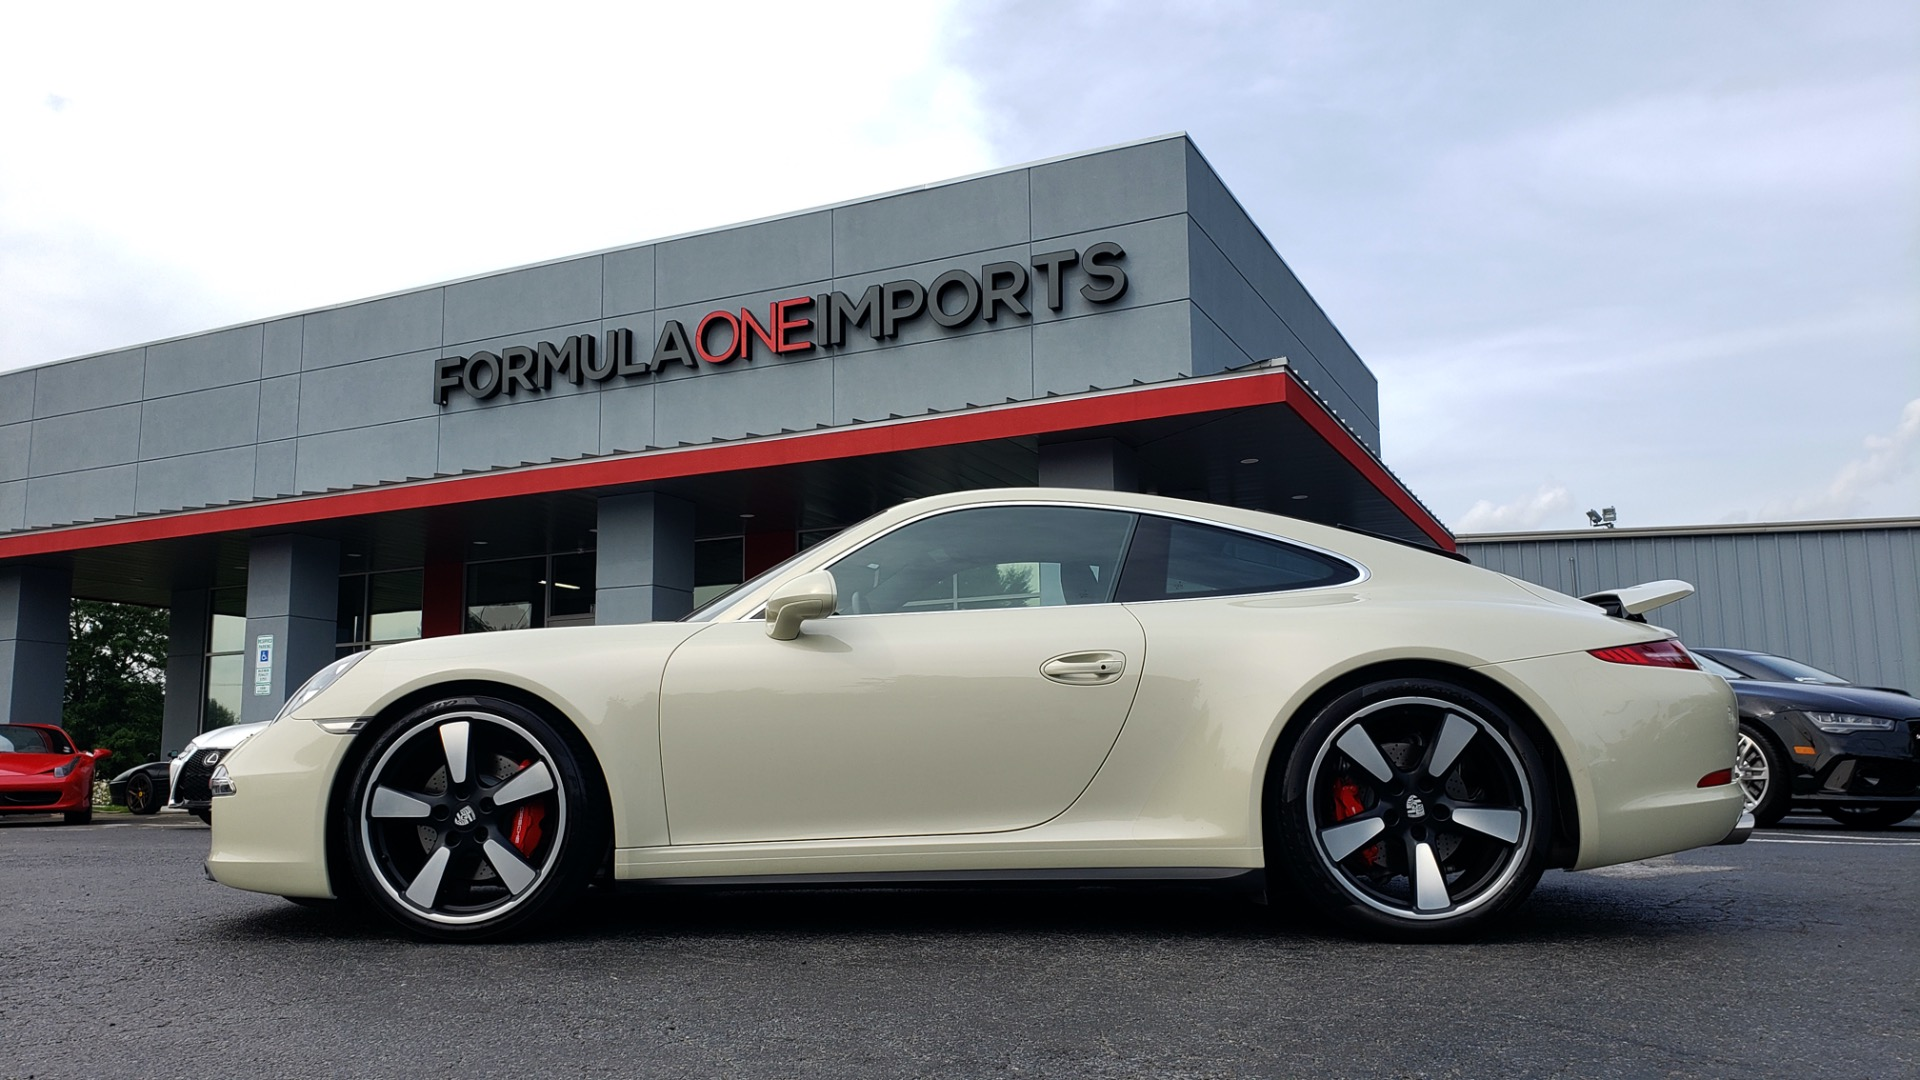 Used 2014 Porsche 911 50TH ANNIVERSARY EDITION NO. 0423 / 7-SPD MAN / NAV / BOSE for sale $118,999 at Formula One Imports in Charlotte NC 28227 105